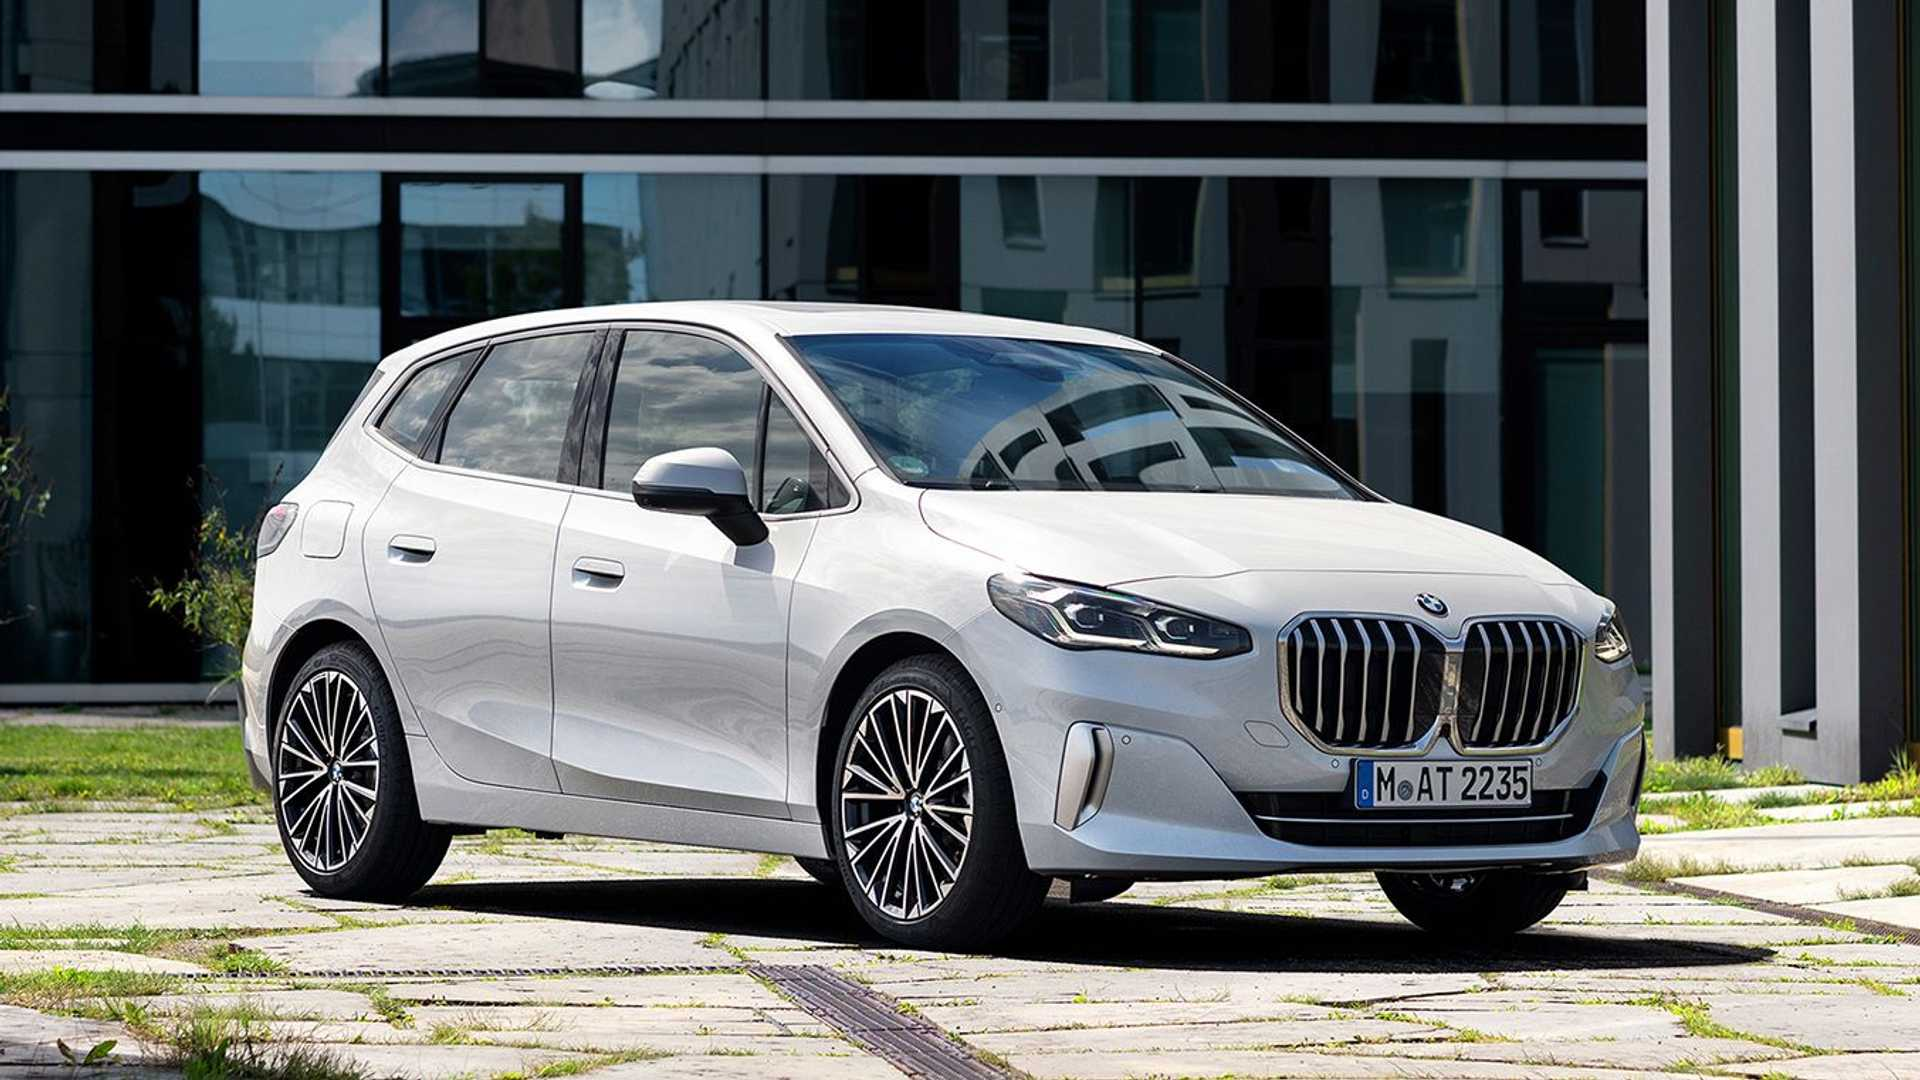 So Uncool It's Actually Cool? The BMW 2-Series Active Tourer Is An Interesting Next Step For Piston Powered BMWs